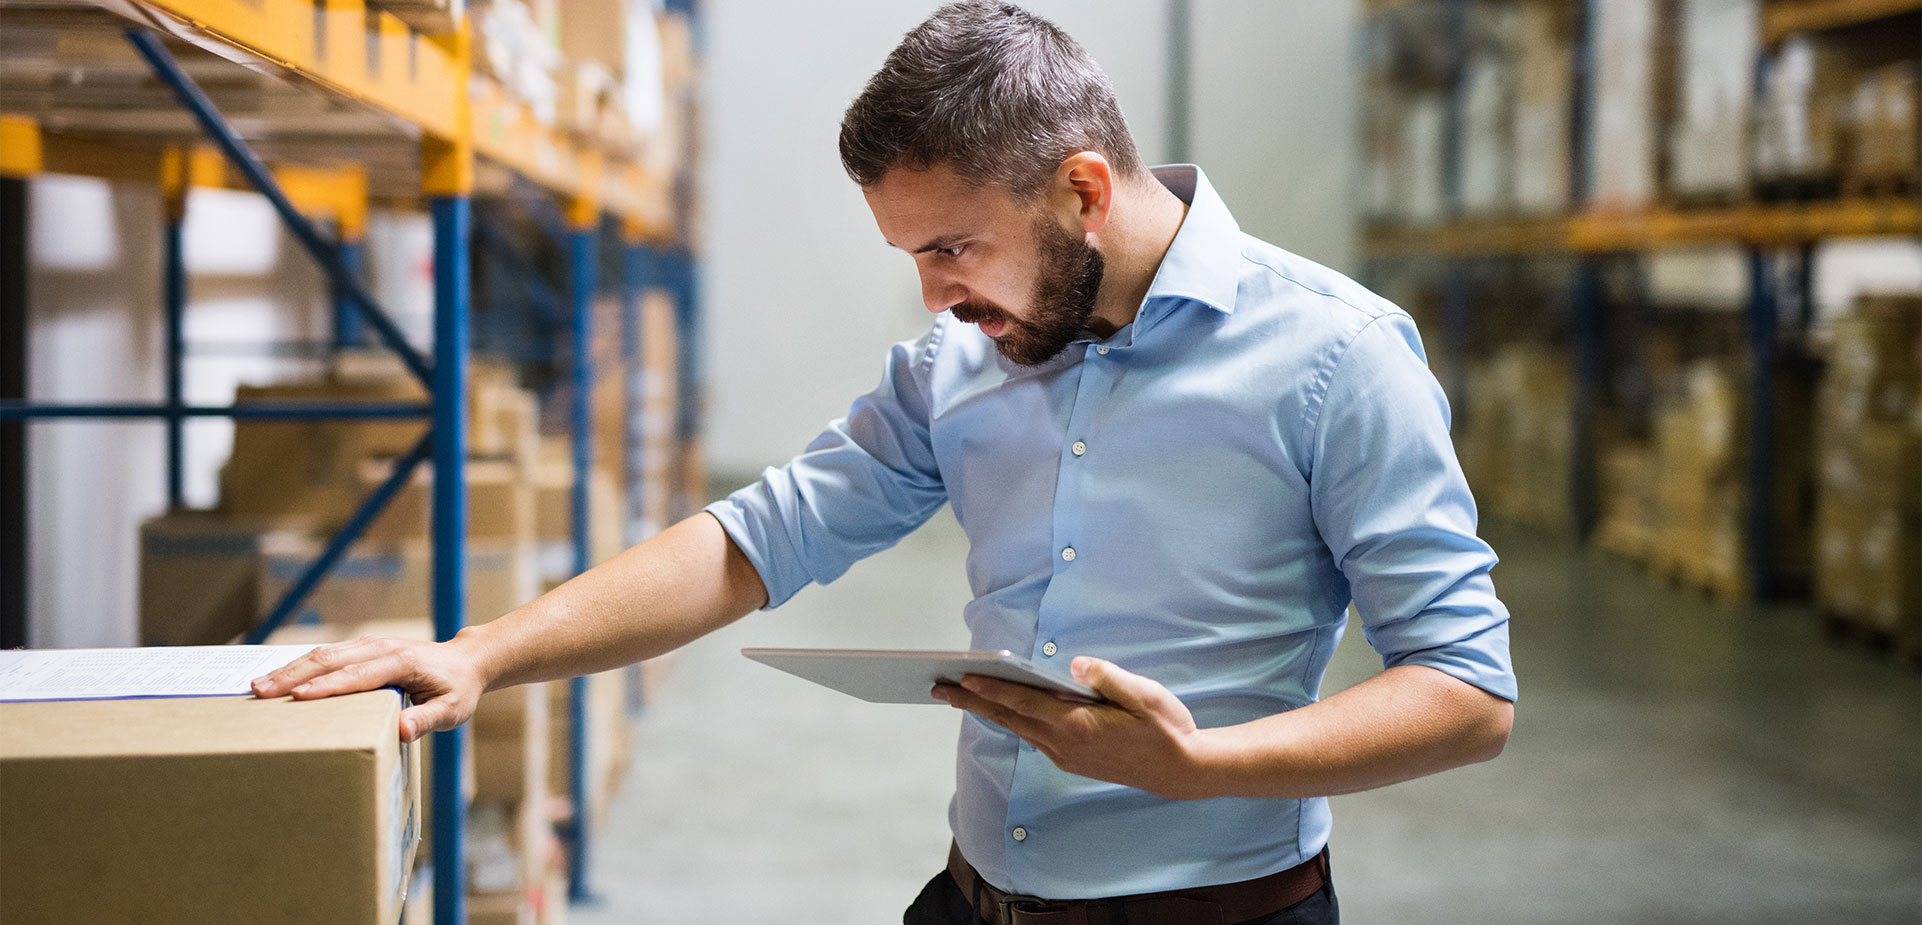 Warehouse Management Issues and Their Solutions